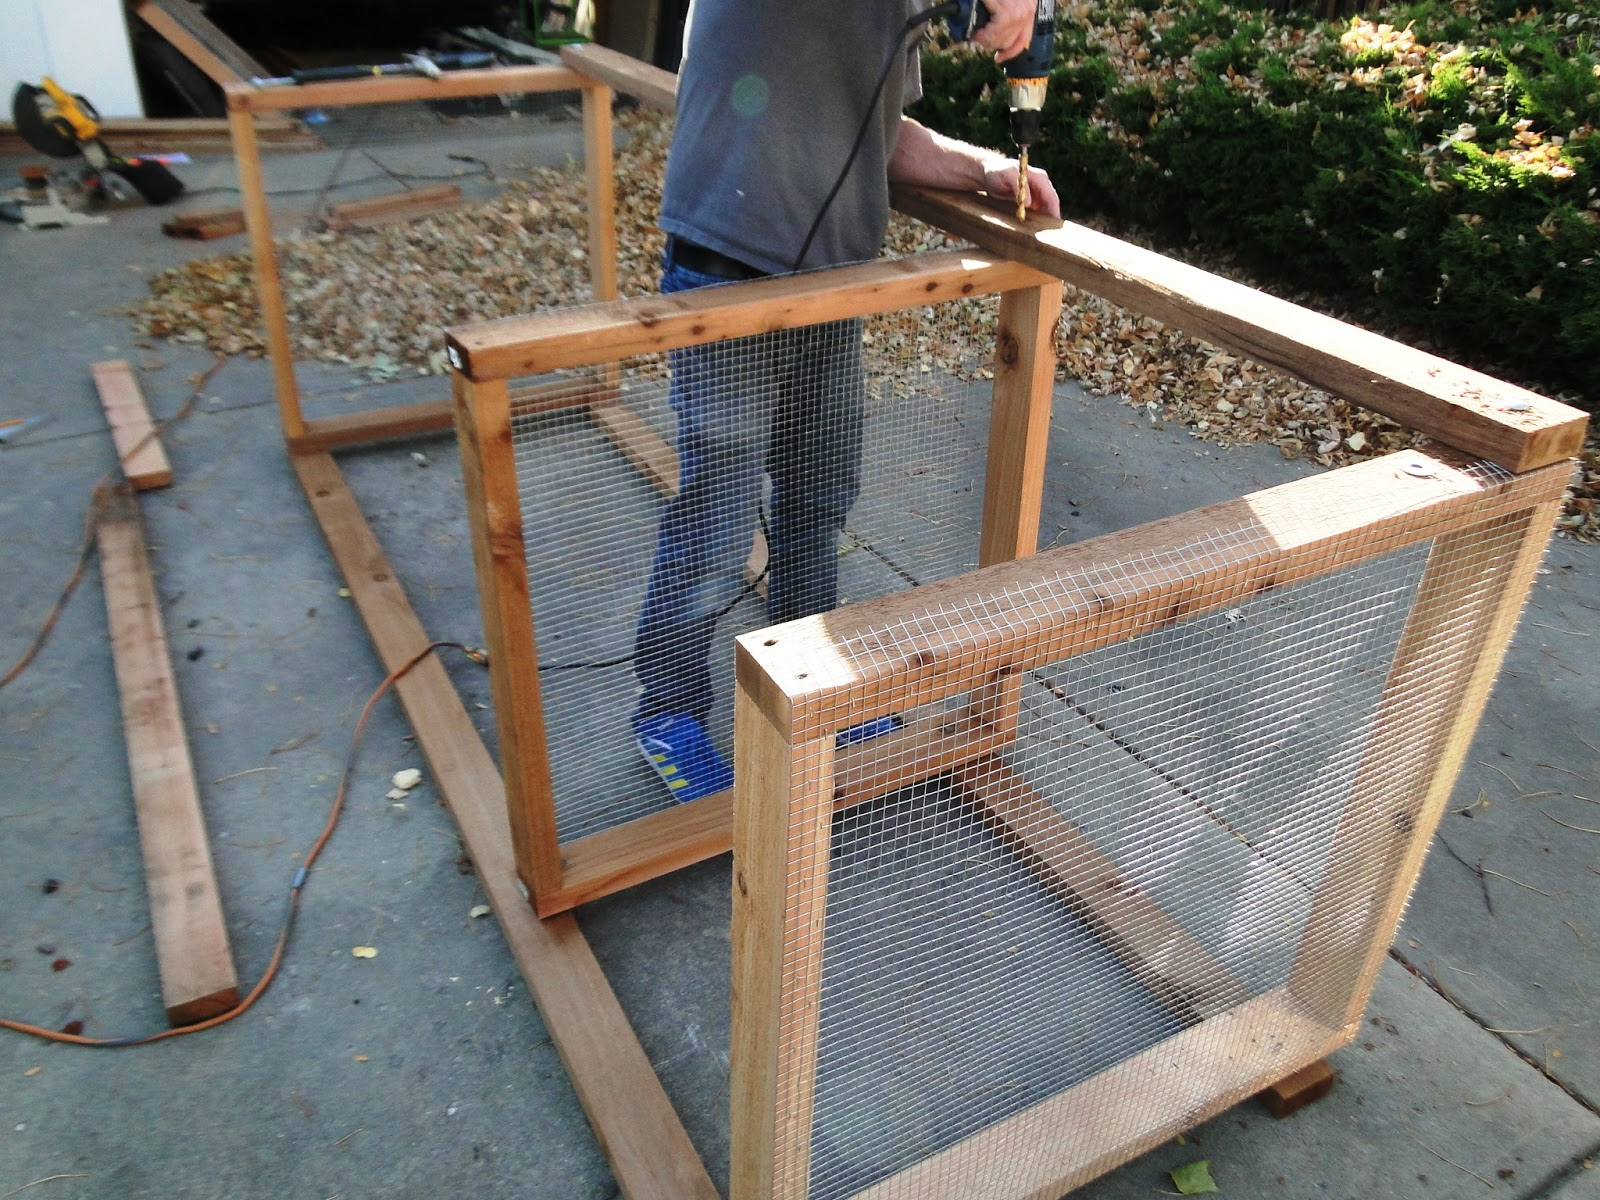 Best Site For Woodworking Plans: Build A Wooden Compost